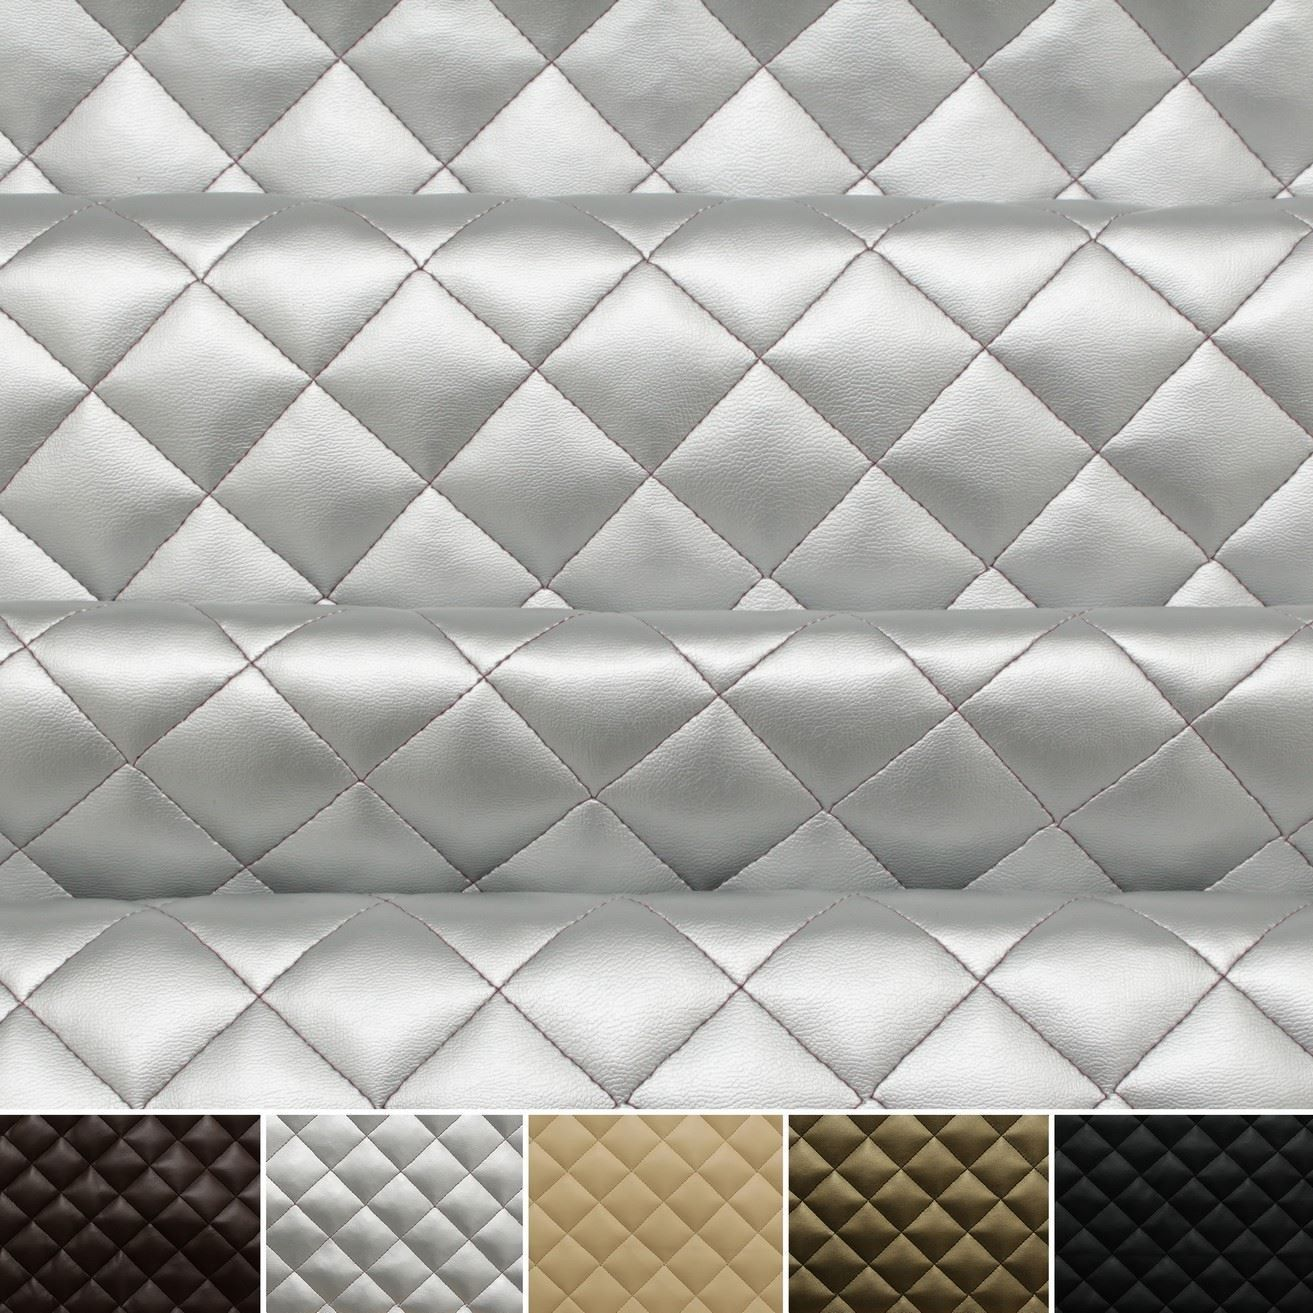 Diamond Quilted Padded Faux Leather Fabric | Fabric inspiration ... : quilted leather material - Adamdwight.com